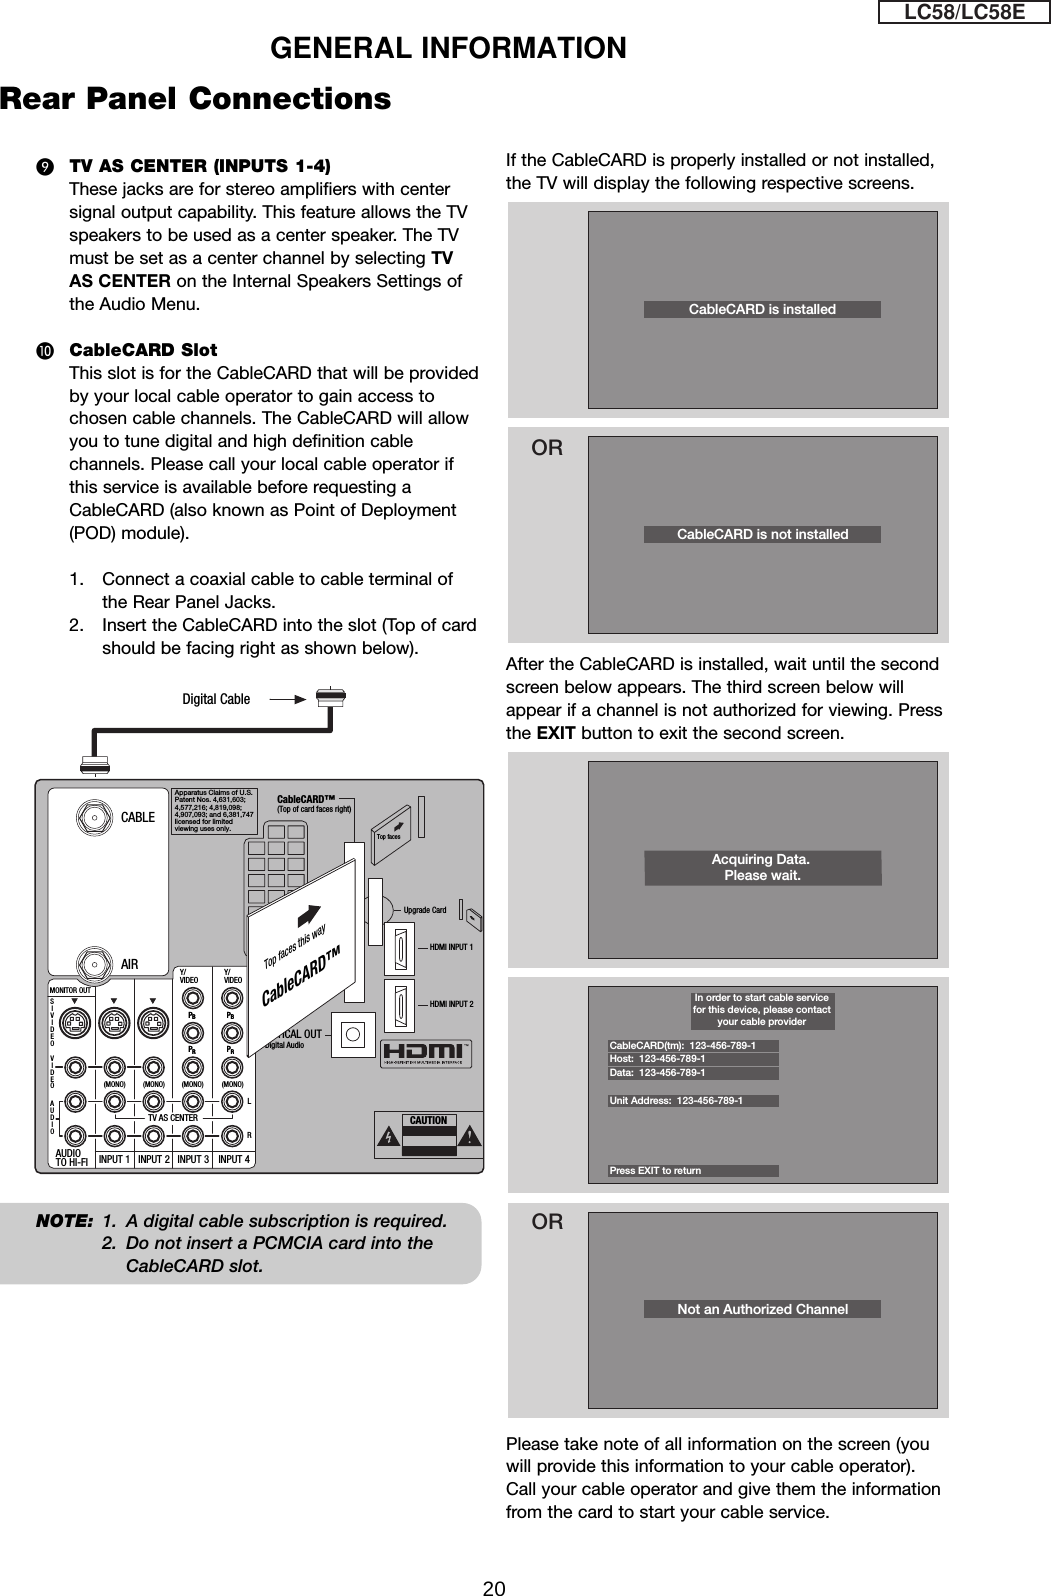 PANO 0191 55vg825 R Pid Vga Cable Wiring Diagram on